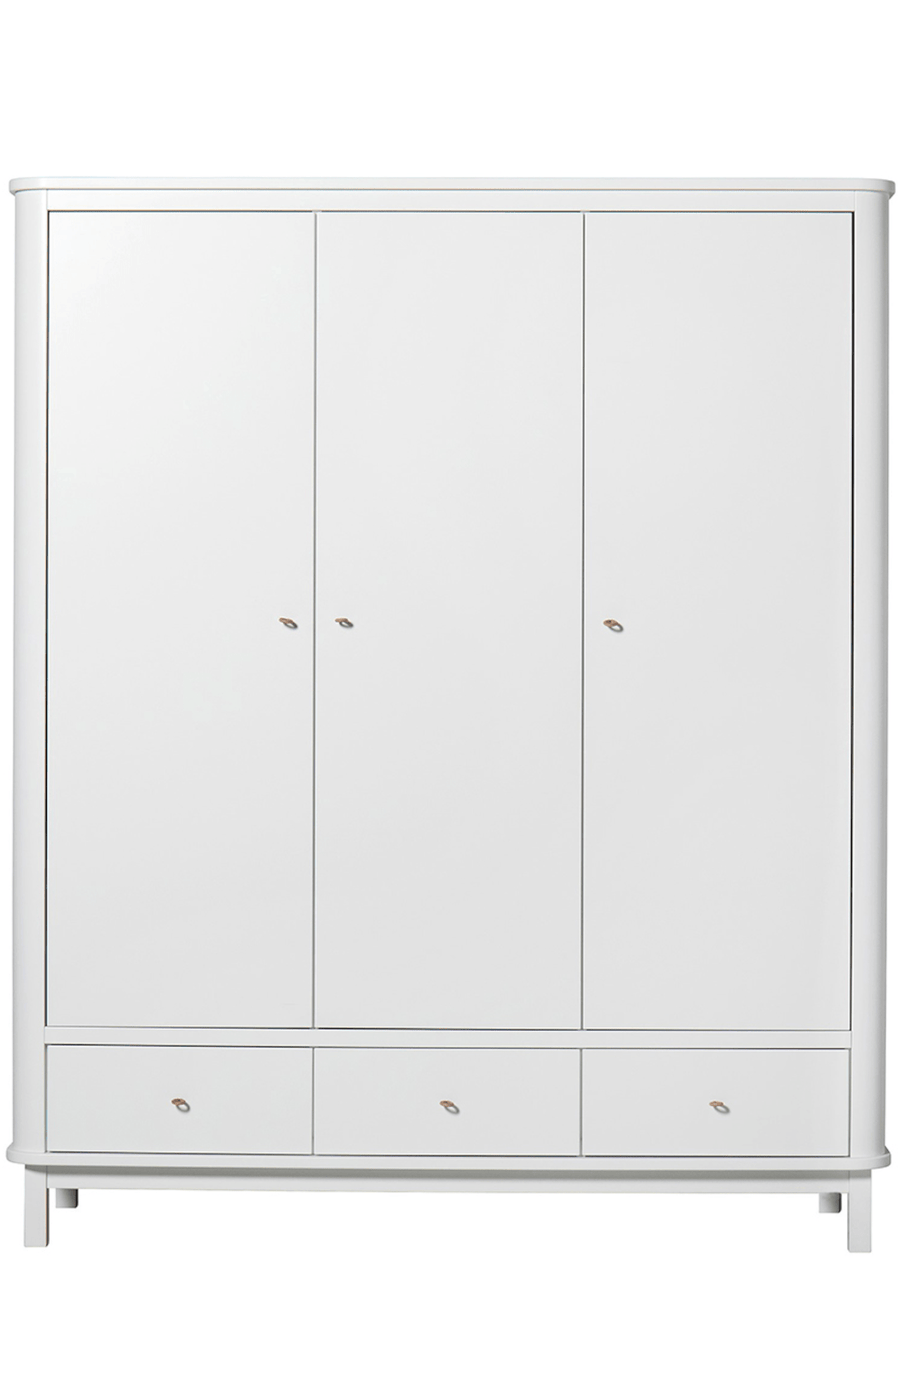 Oliver Furniture Wardrobe 3 doors